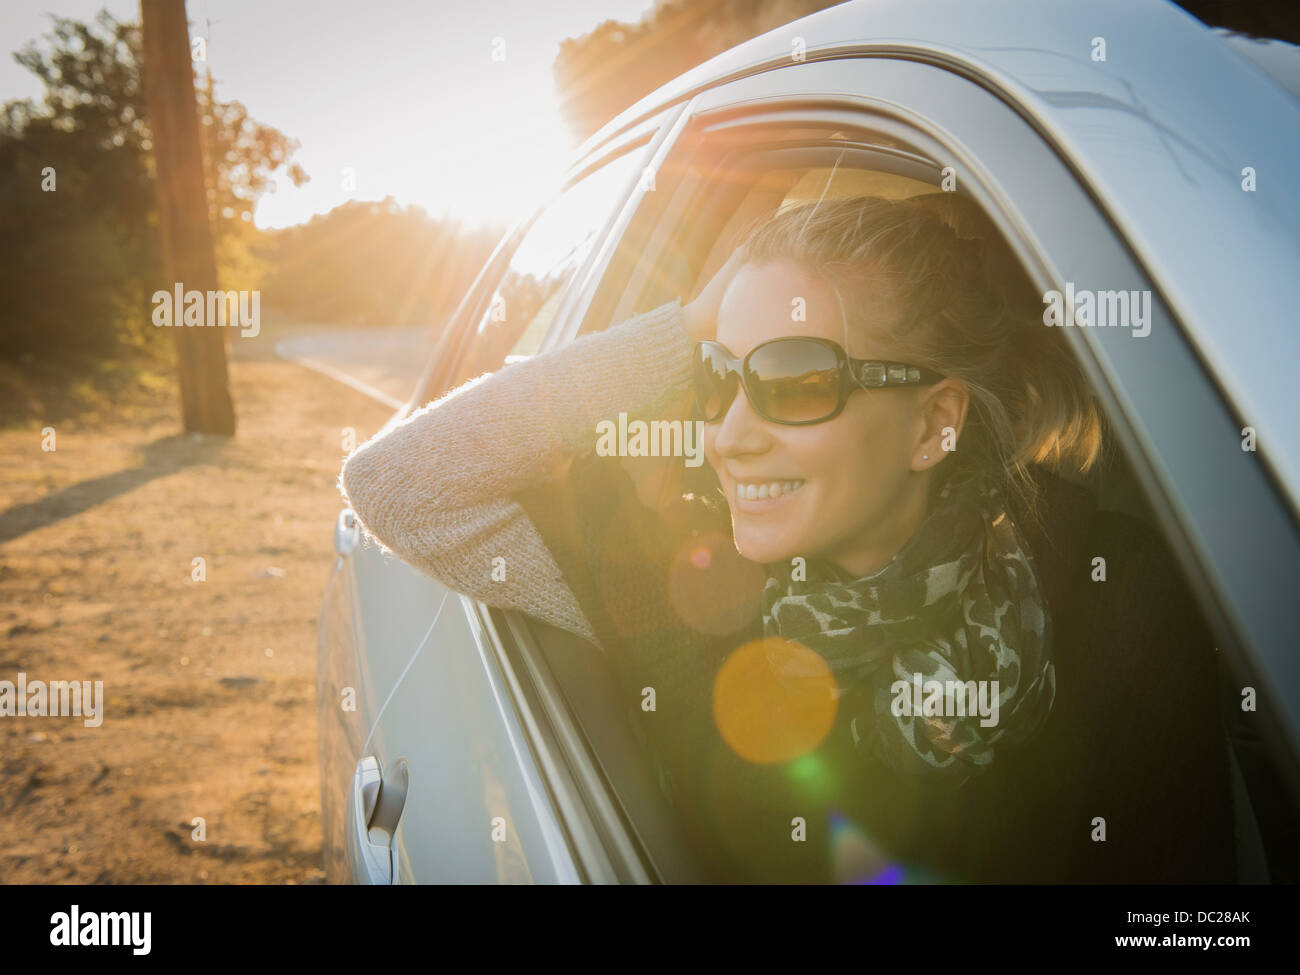 Woman looking out of car window - Stock Image